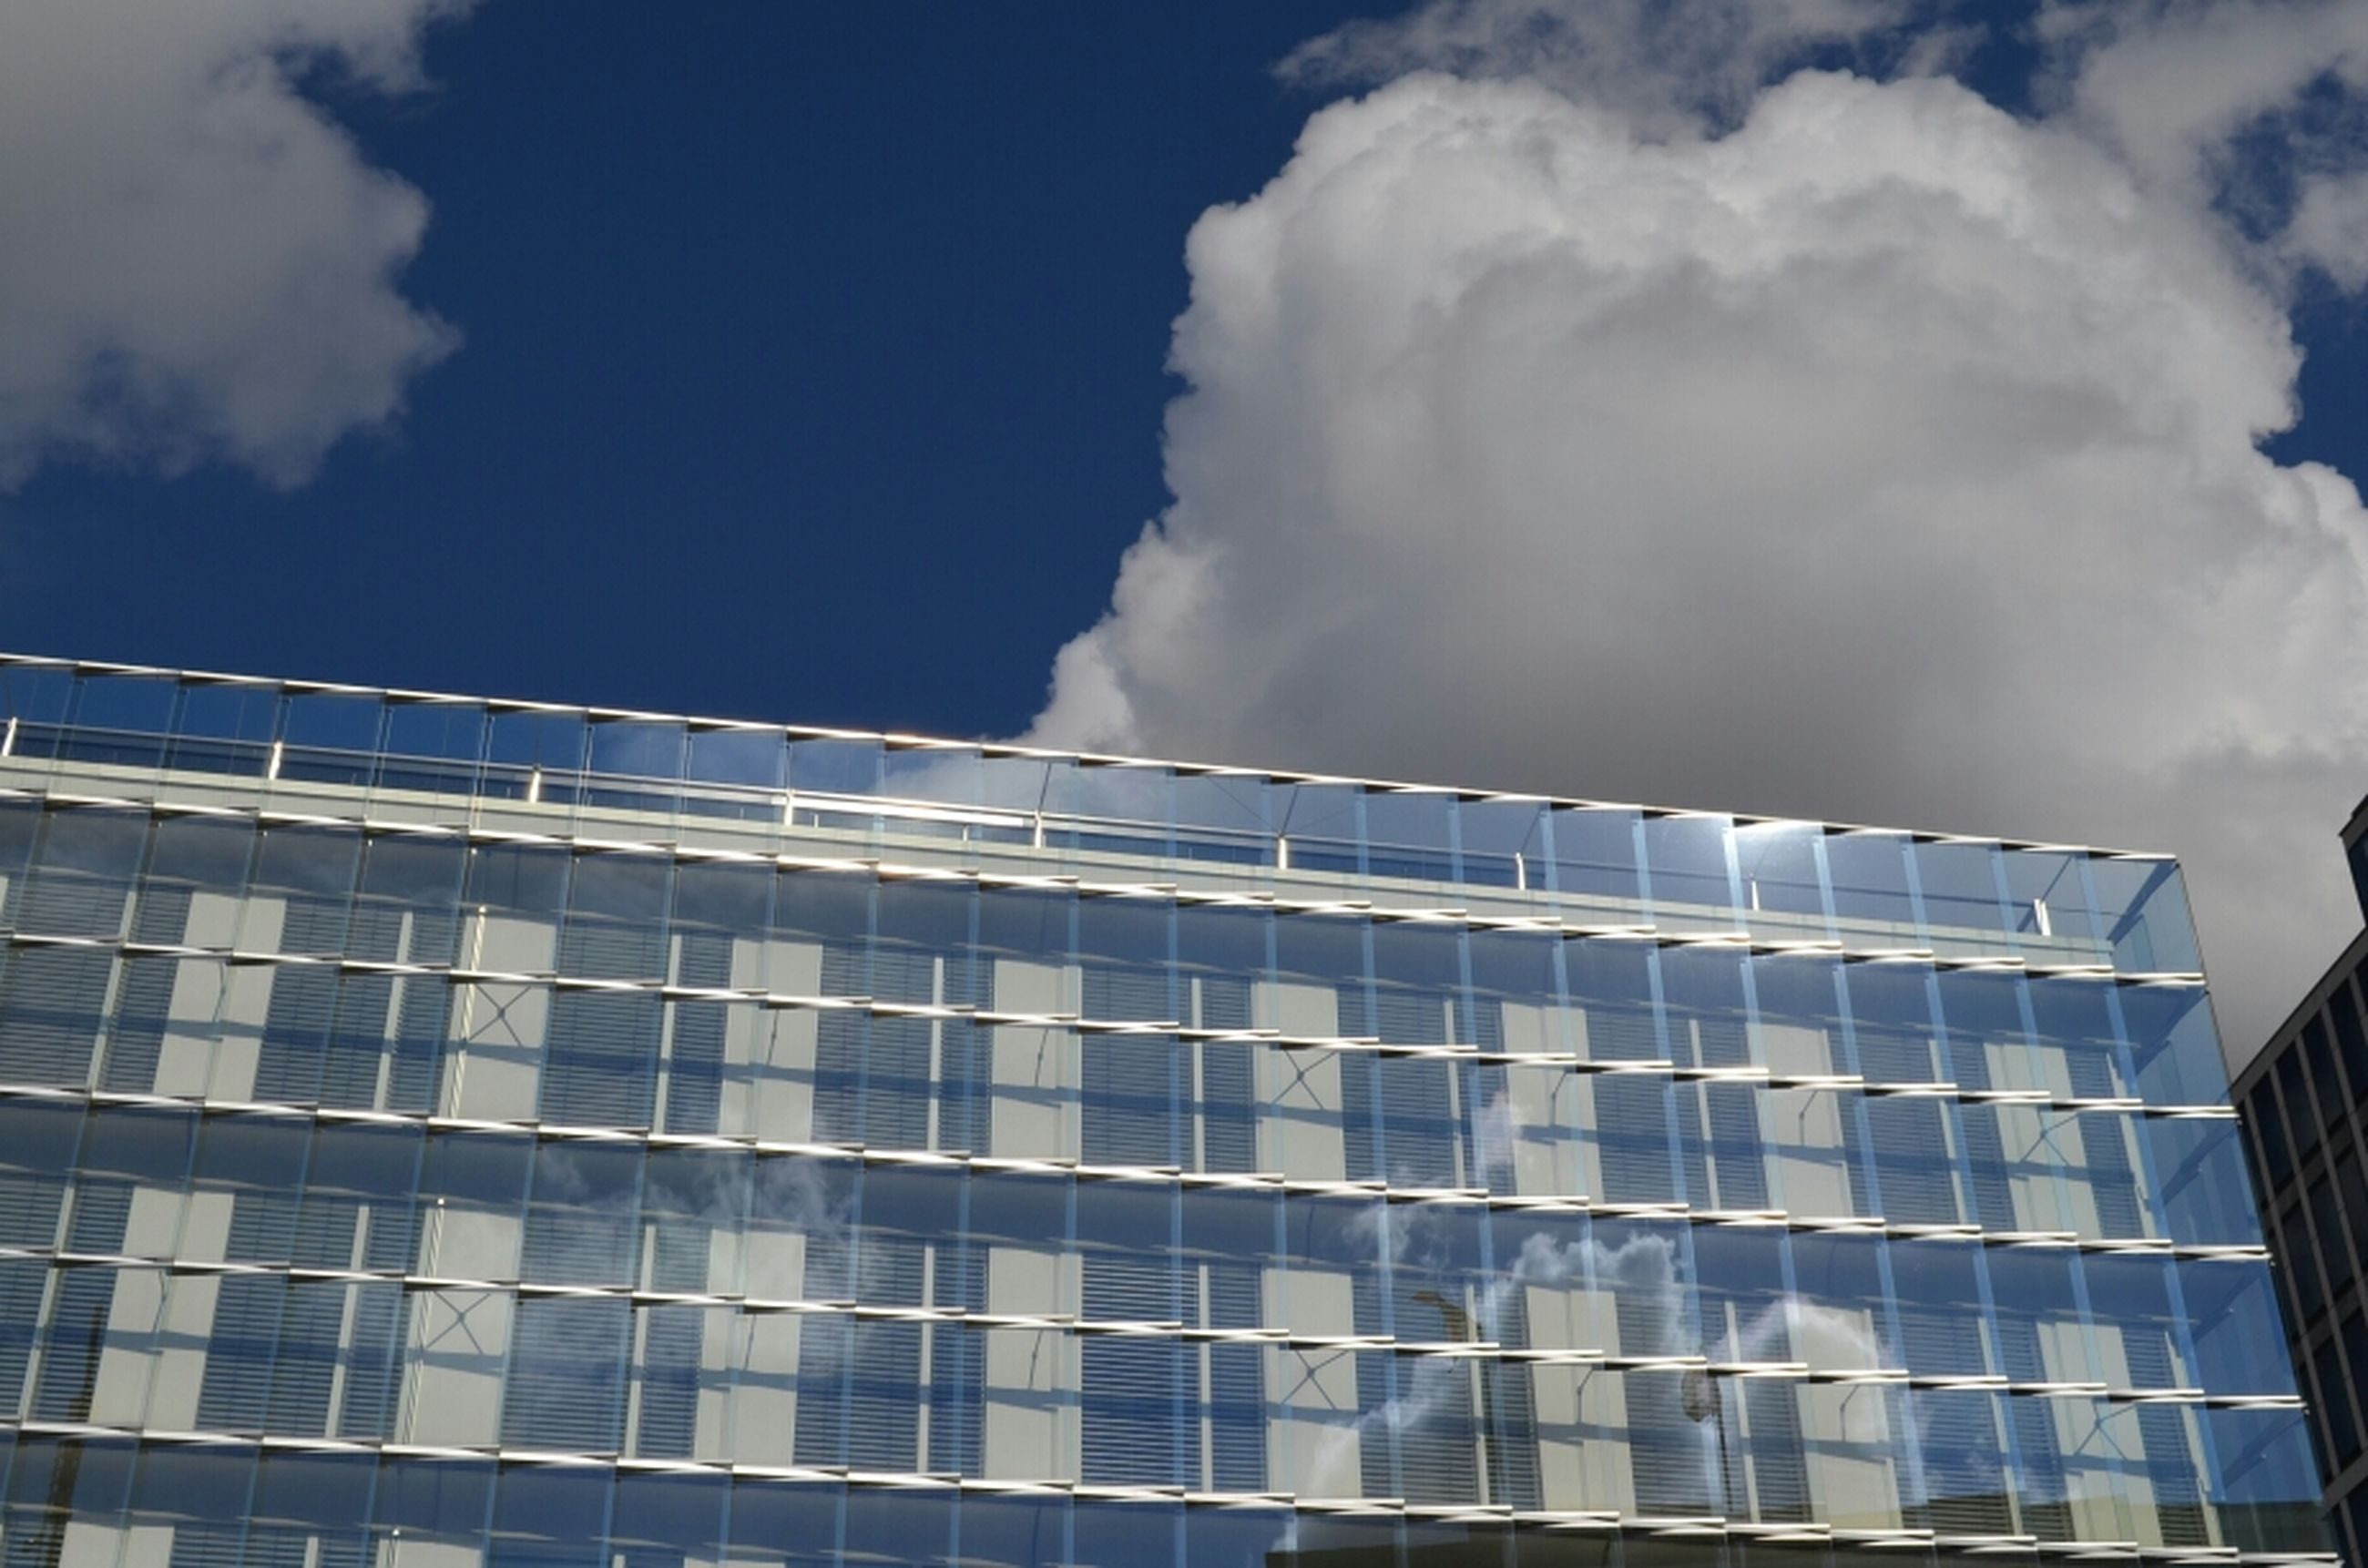 low angle view, architecture, built structure, building exterior, sky, cloud - sky, modern, building, cloudy, cloud, city, office building, blue, glass - material, pattern, day, outdoors, window, no people, reflection